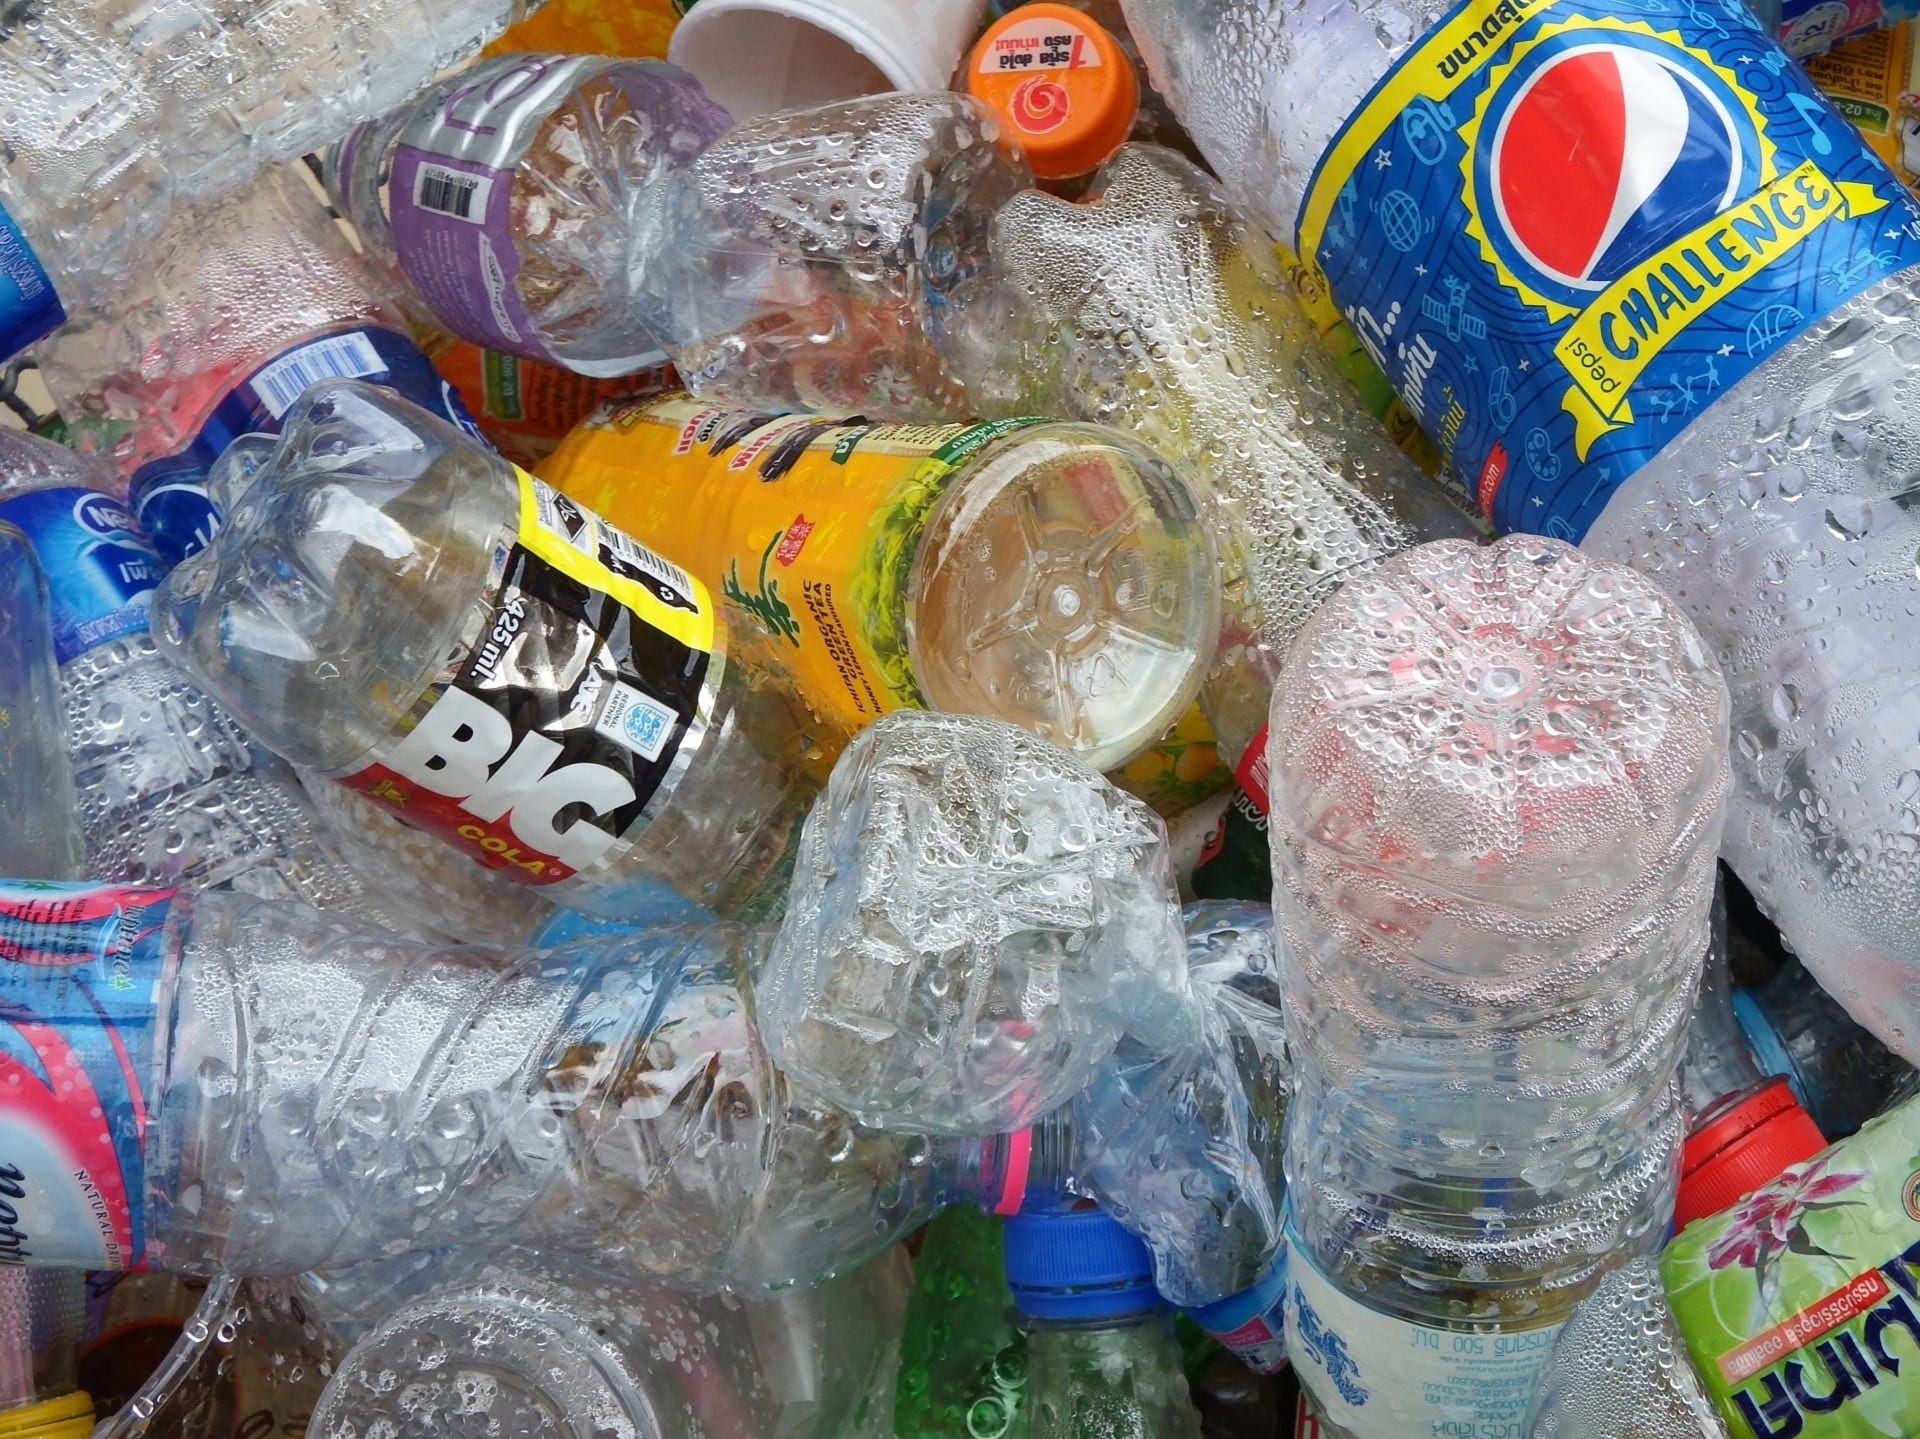 High-profile Galwegians to go plastic-free for a whole week